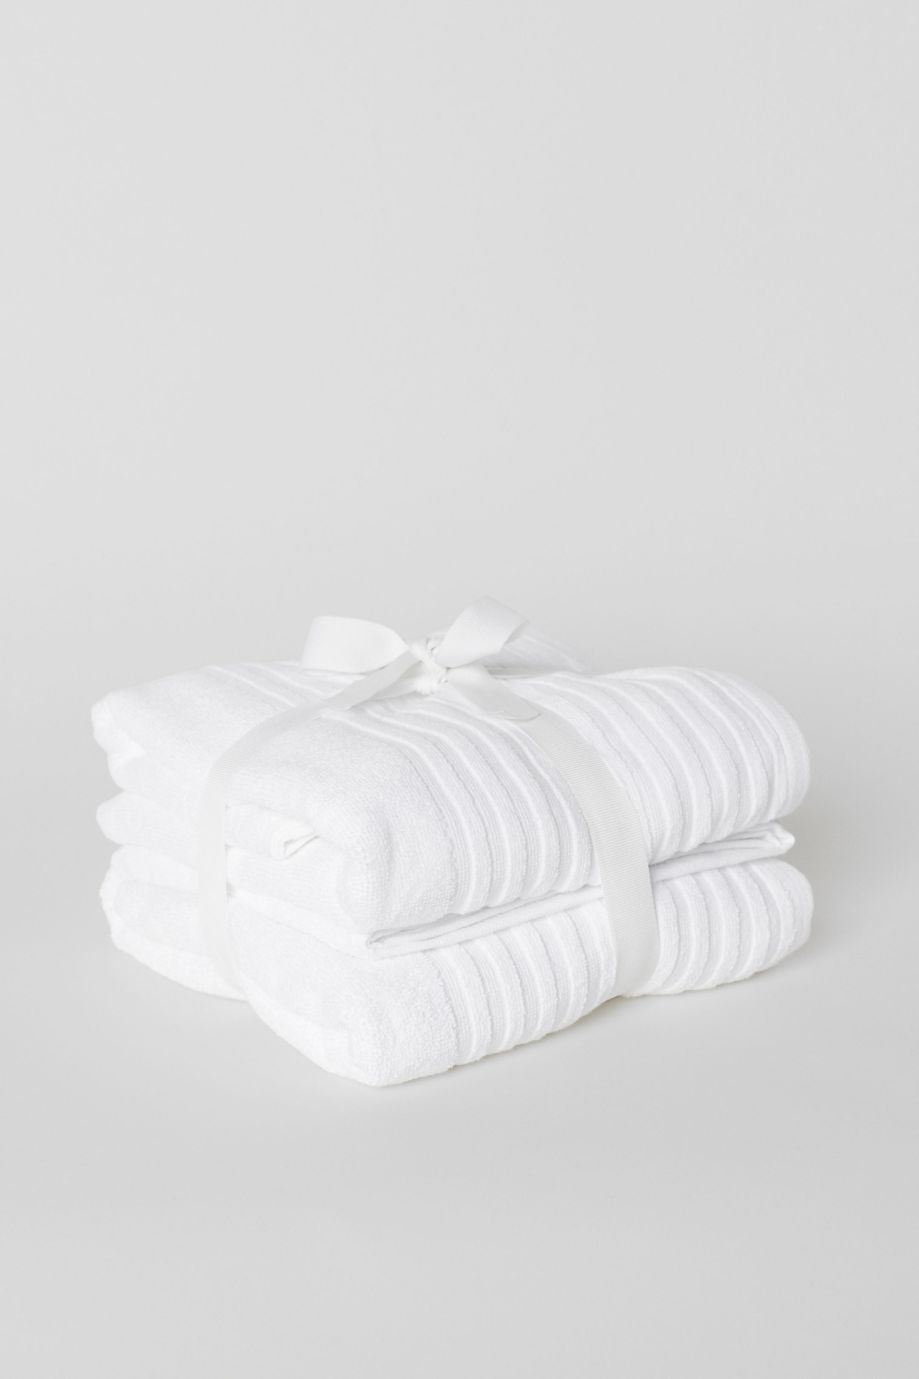 hm towels